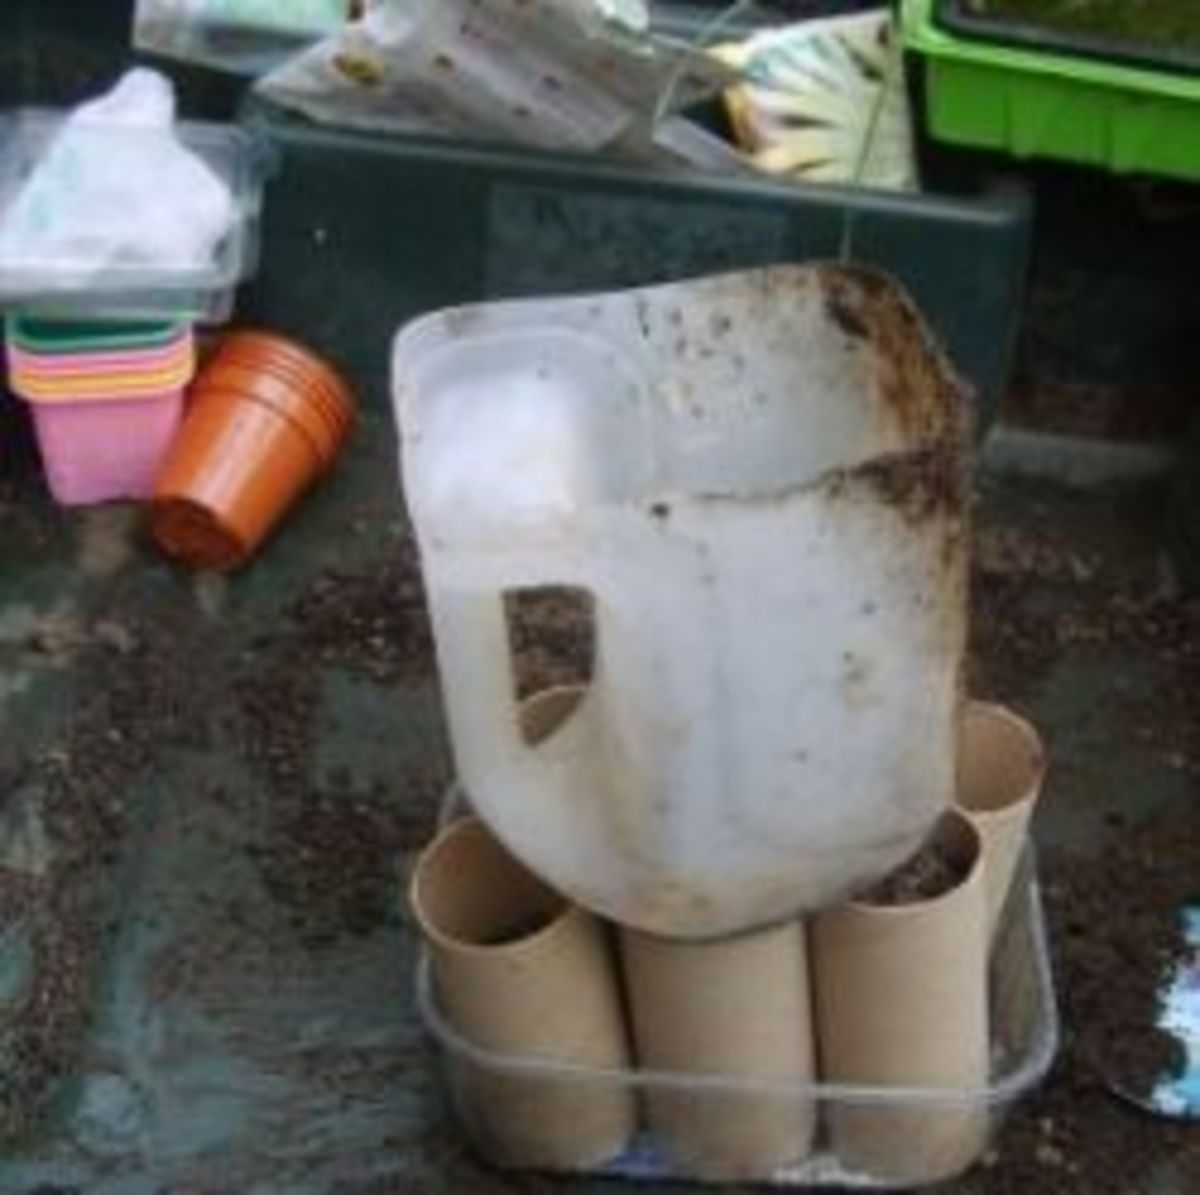 Recycled plastic compost scoop and funnel